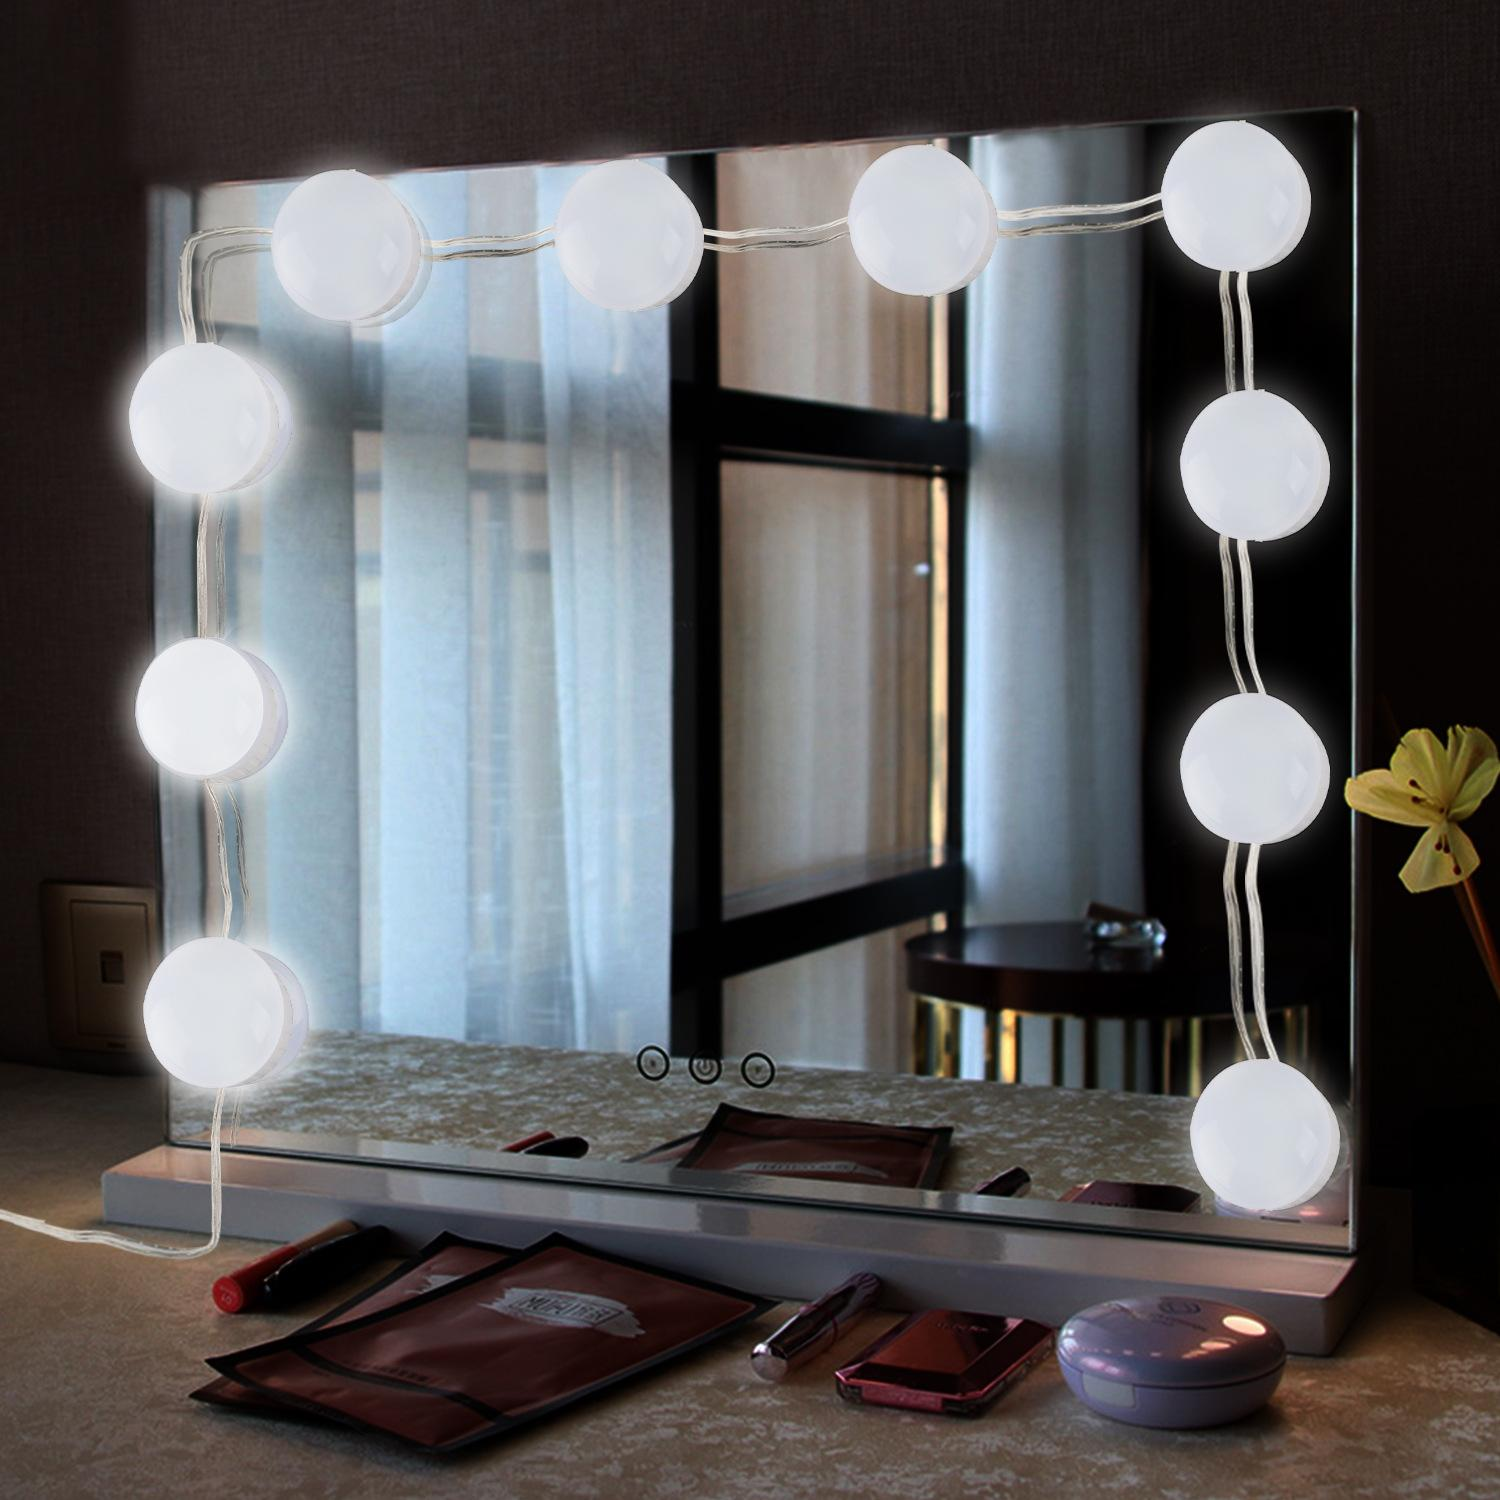 Of Usb Bulbs Led Makeup Comestic Mirror Light Kit With Dimmable